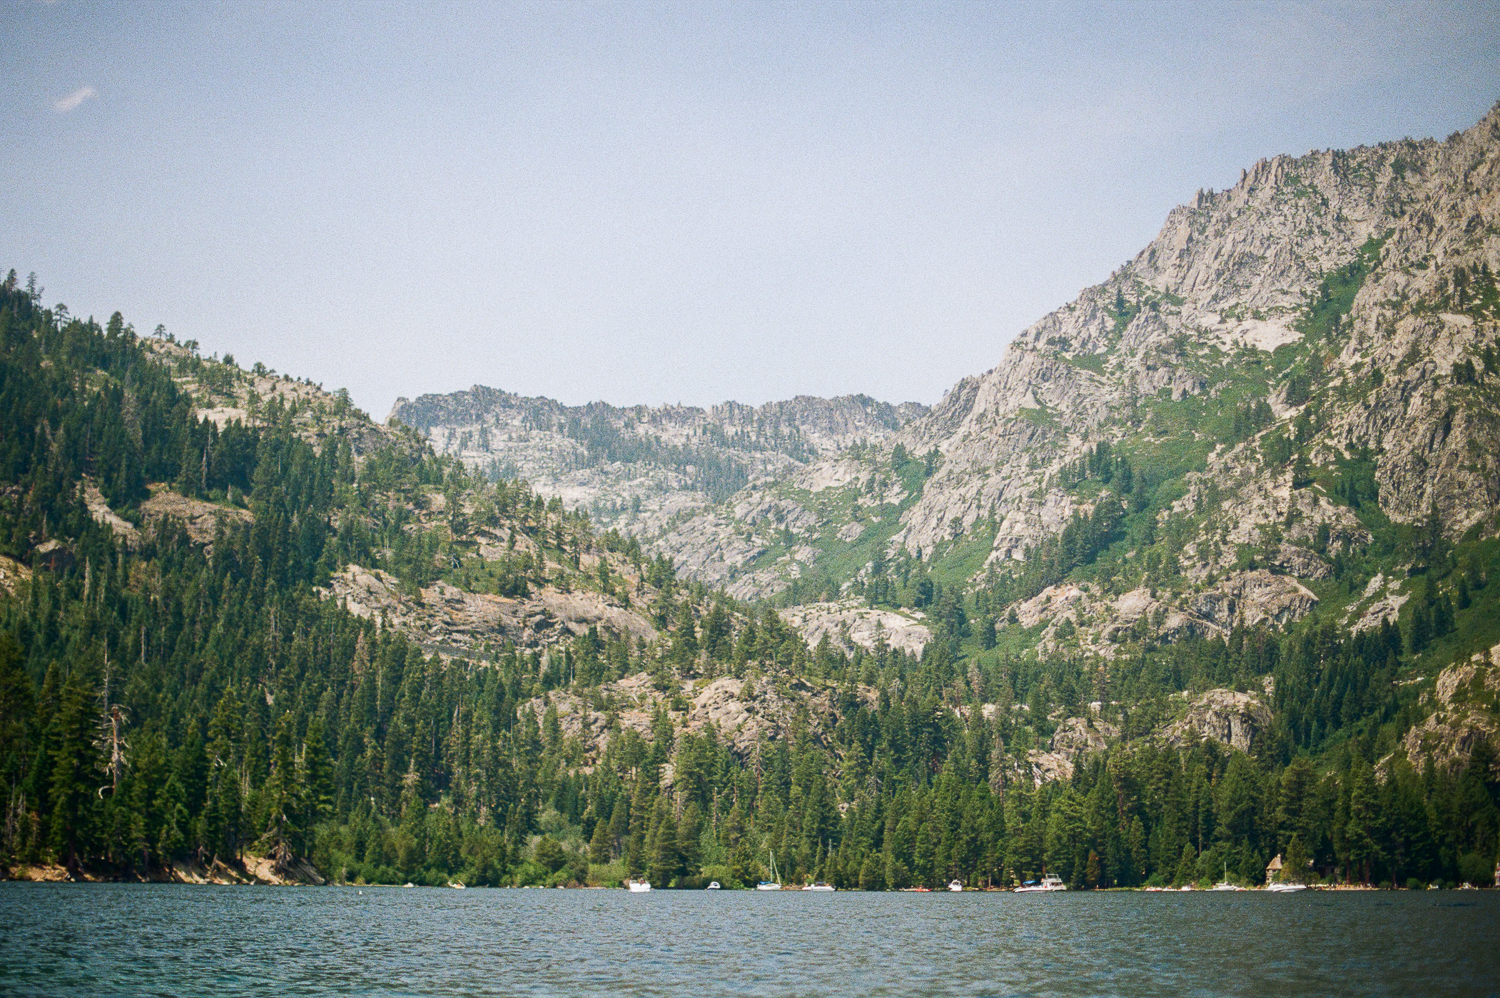 View of the Mountains from Emerald Bay